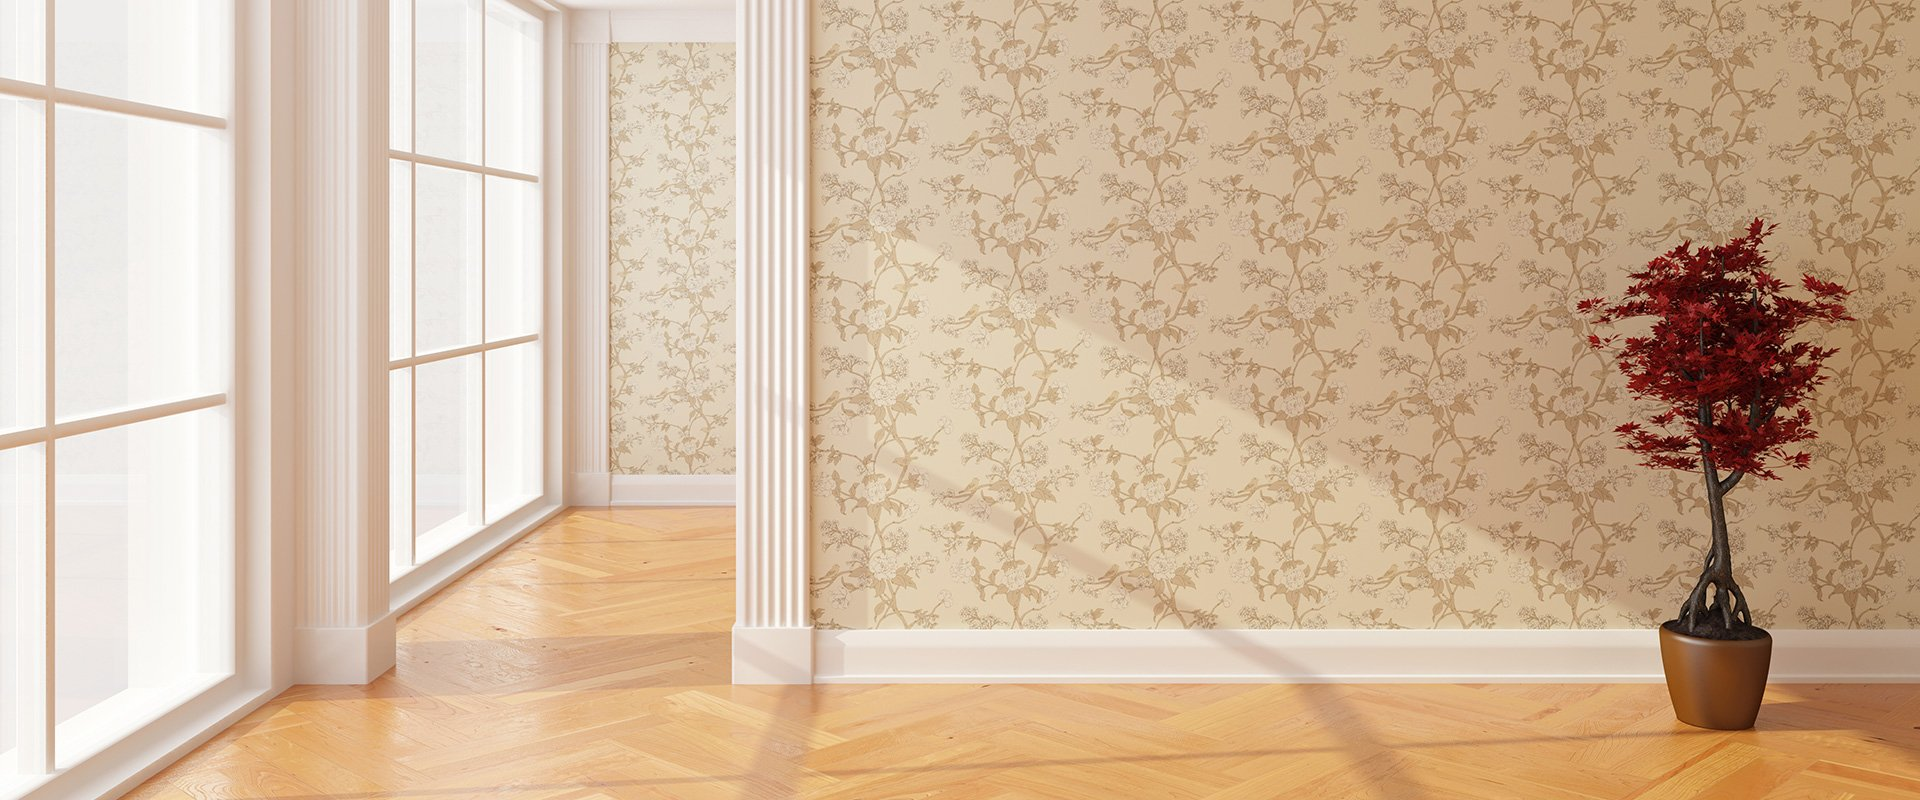 Professional wallpapering